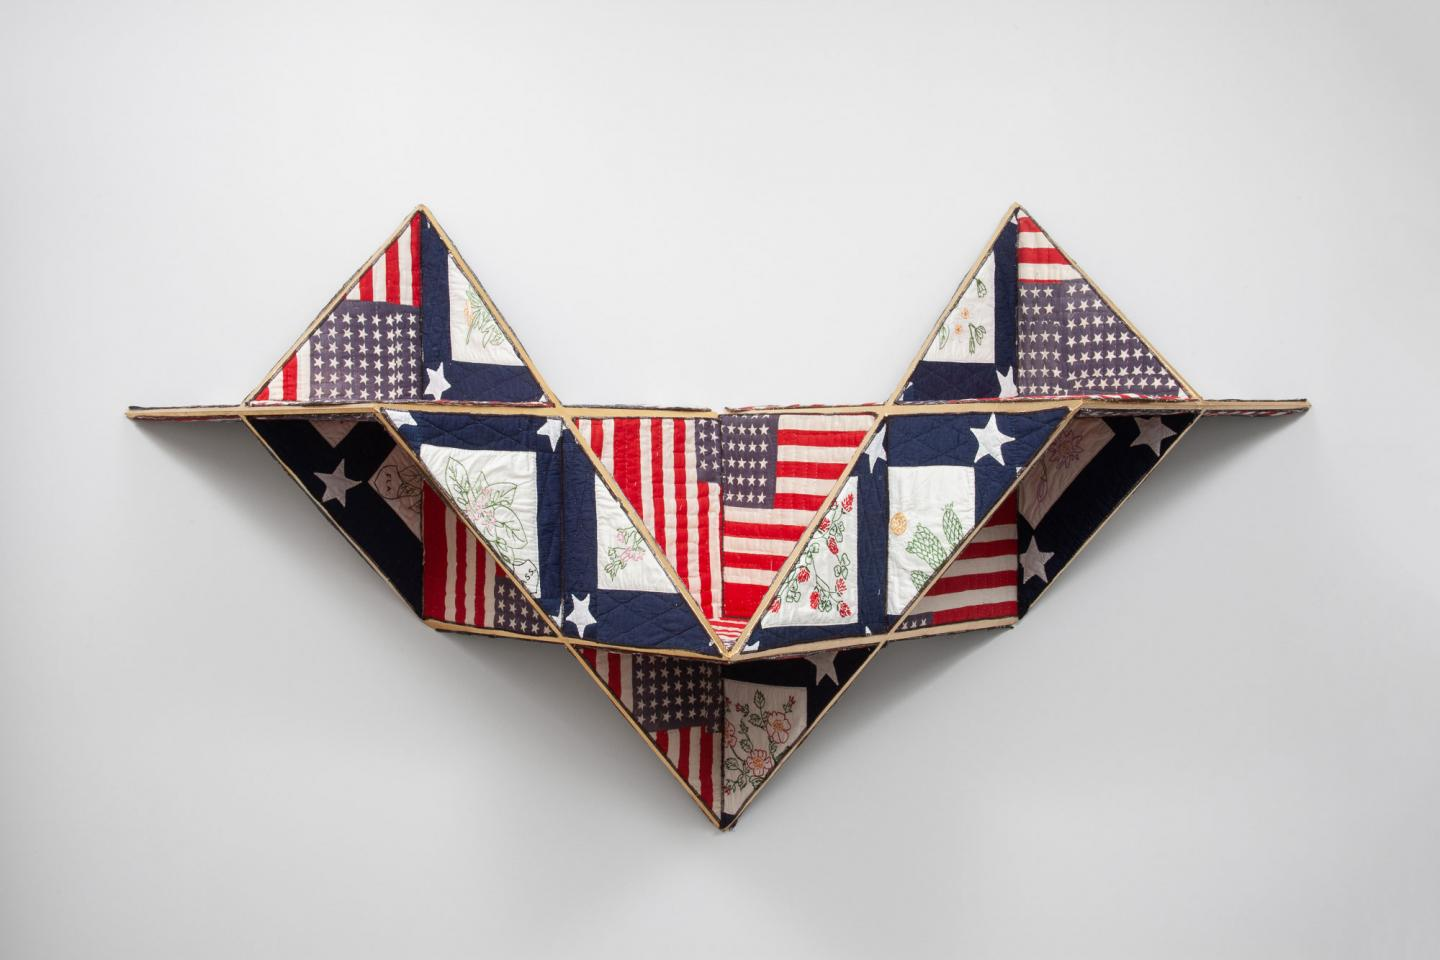 Sanford Biggers, Reconstruction, quilt work